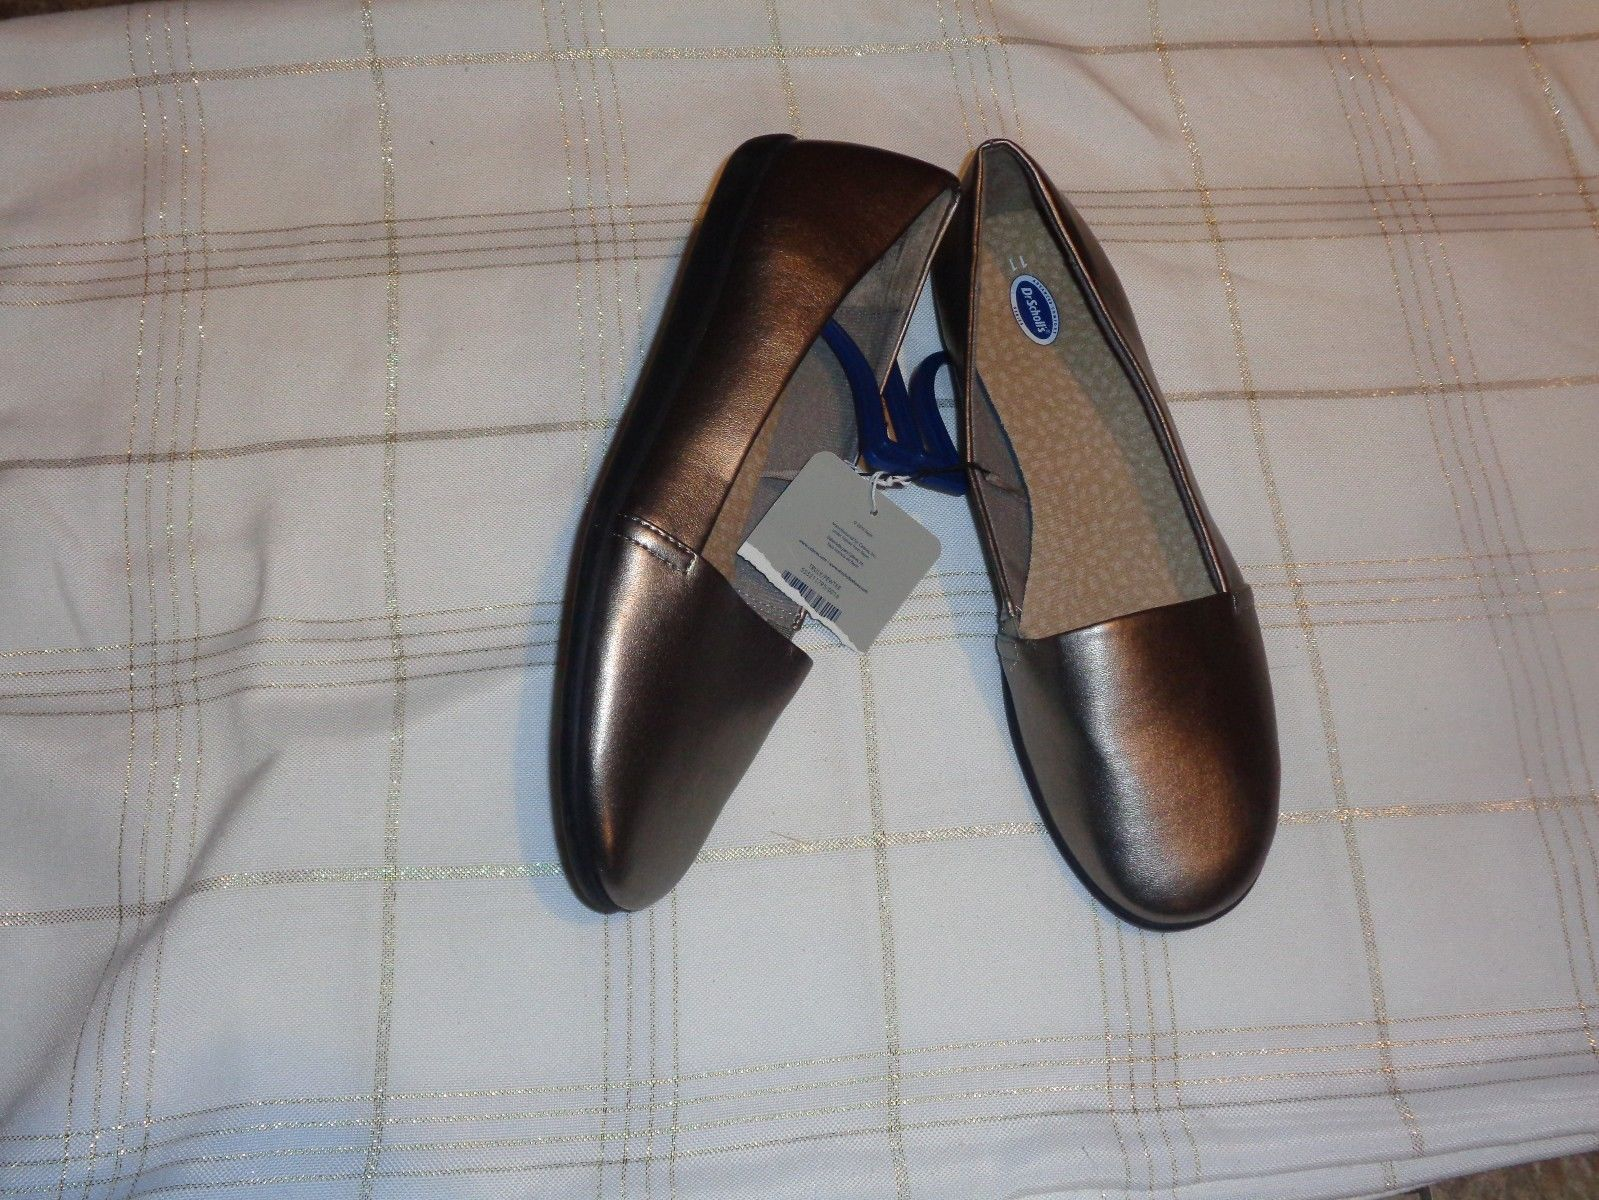 a0cc6d791331 new womens dr scholl s pewter slip on flats shoes size 9 -  16.81